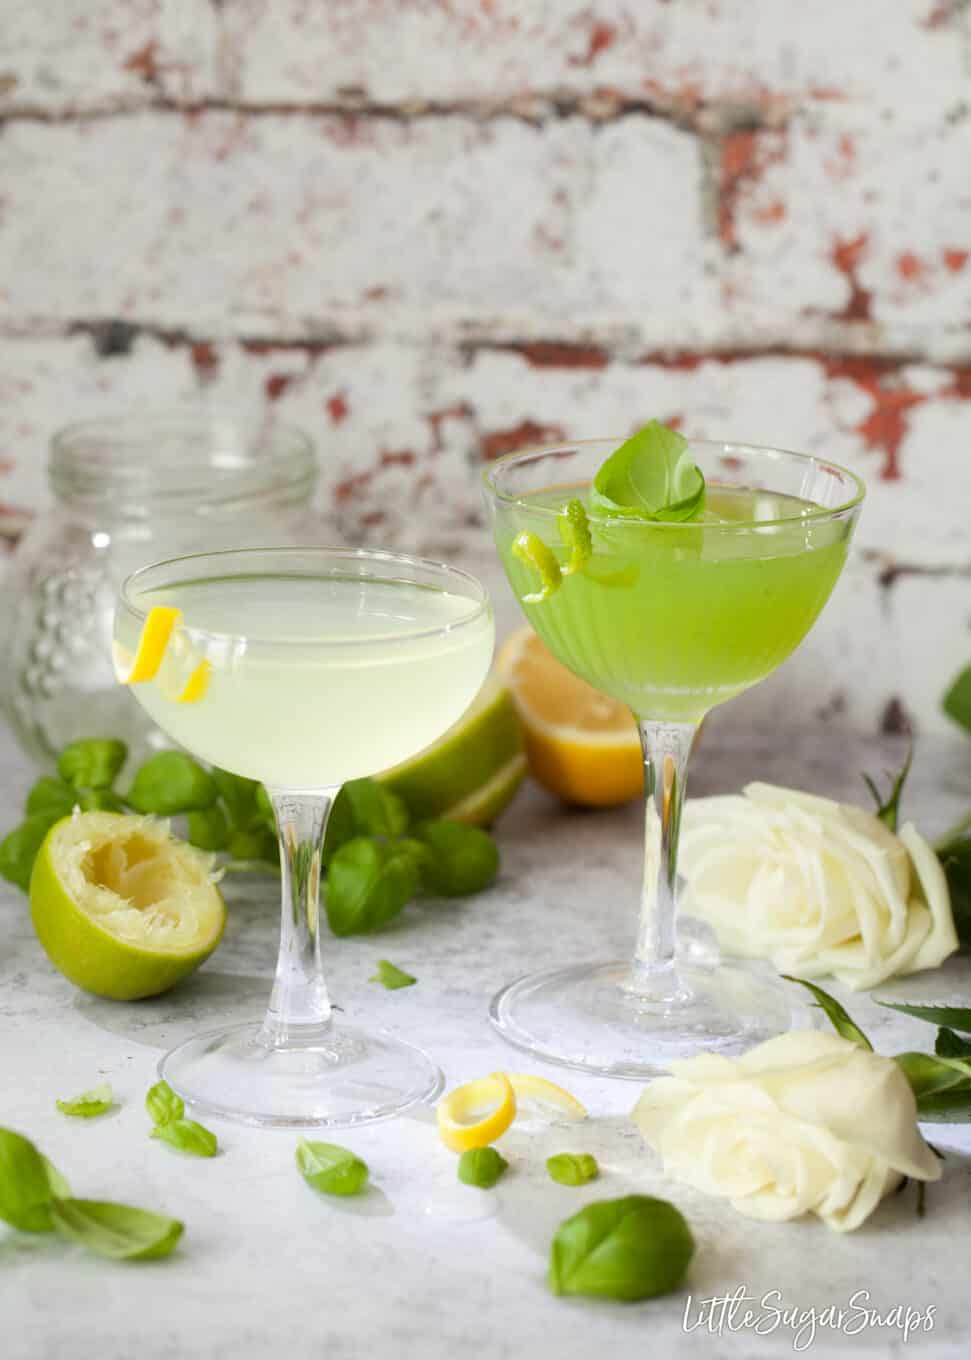 Classic Spring Feeling and Basil Cocktails garnished with lemon and lime. Ingredients and white roses on the worktop